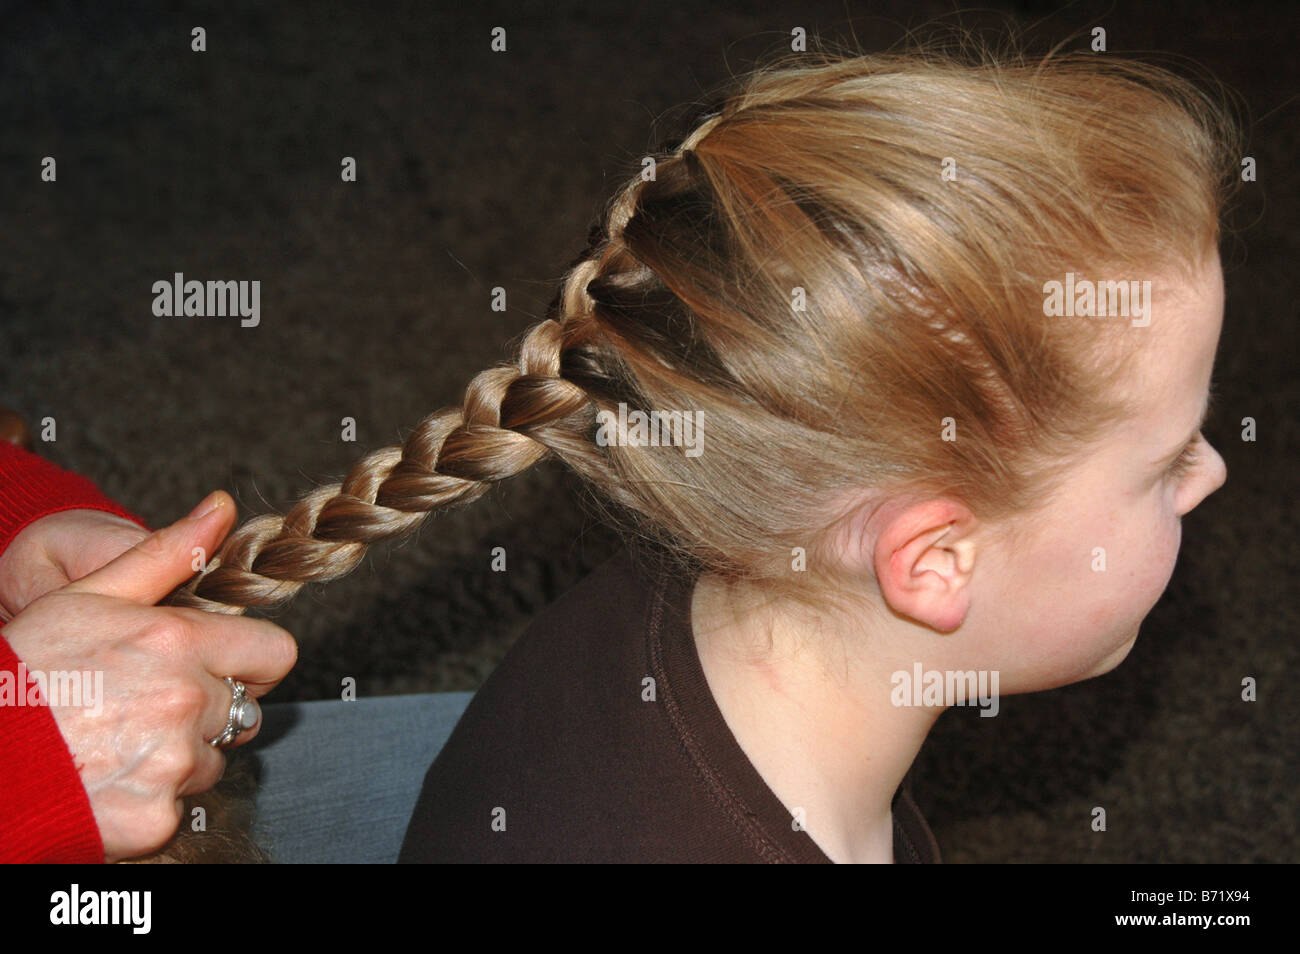 A young girl gets her hair pleated. - Stock Image